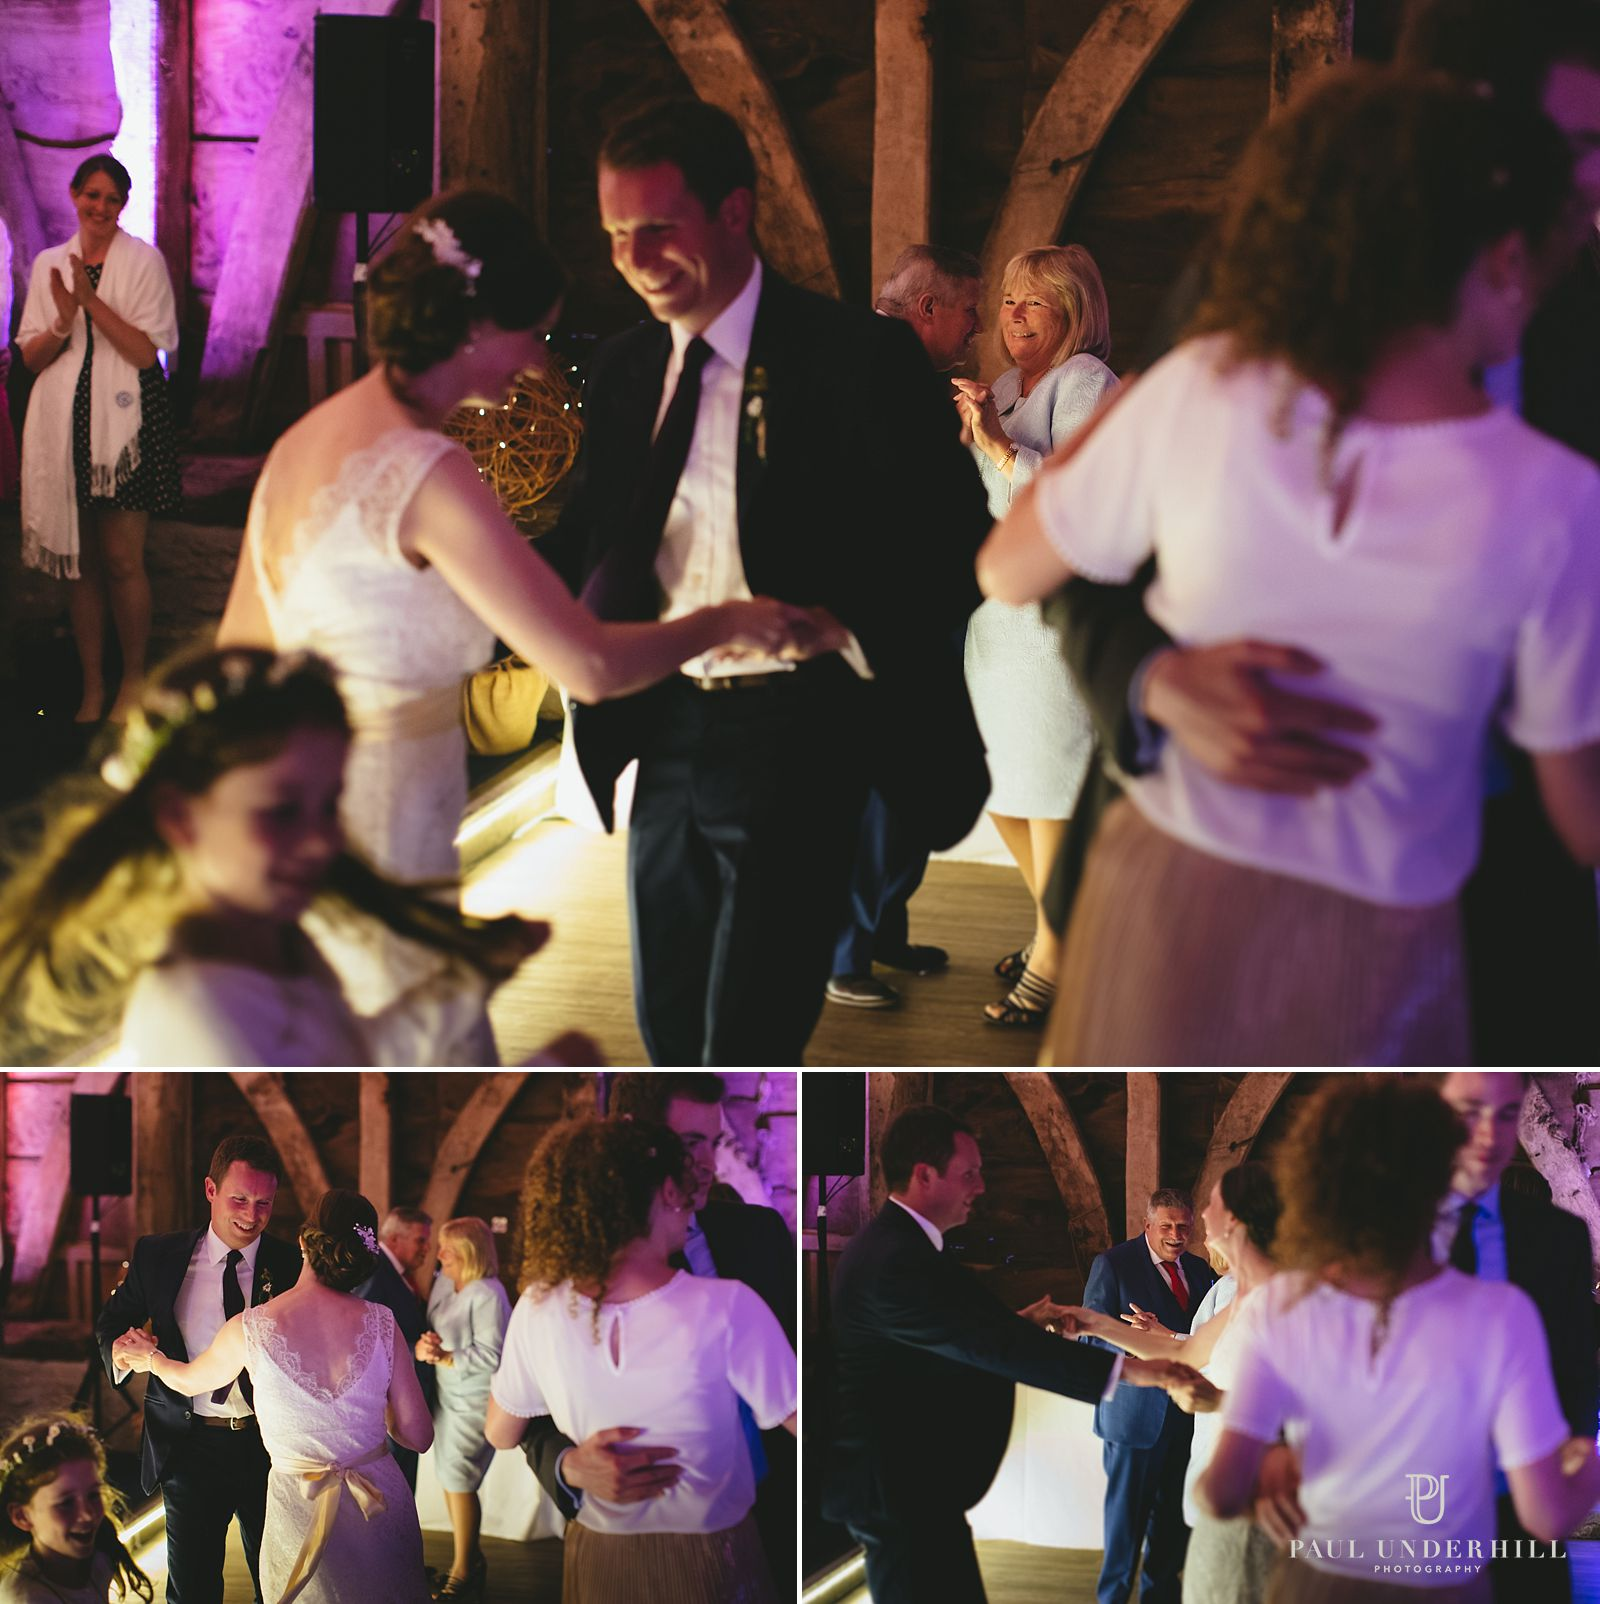 Reportage photography wedding guests dancing